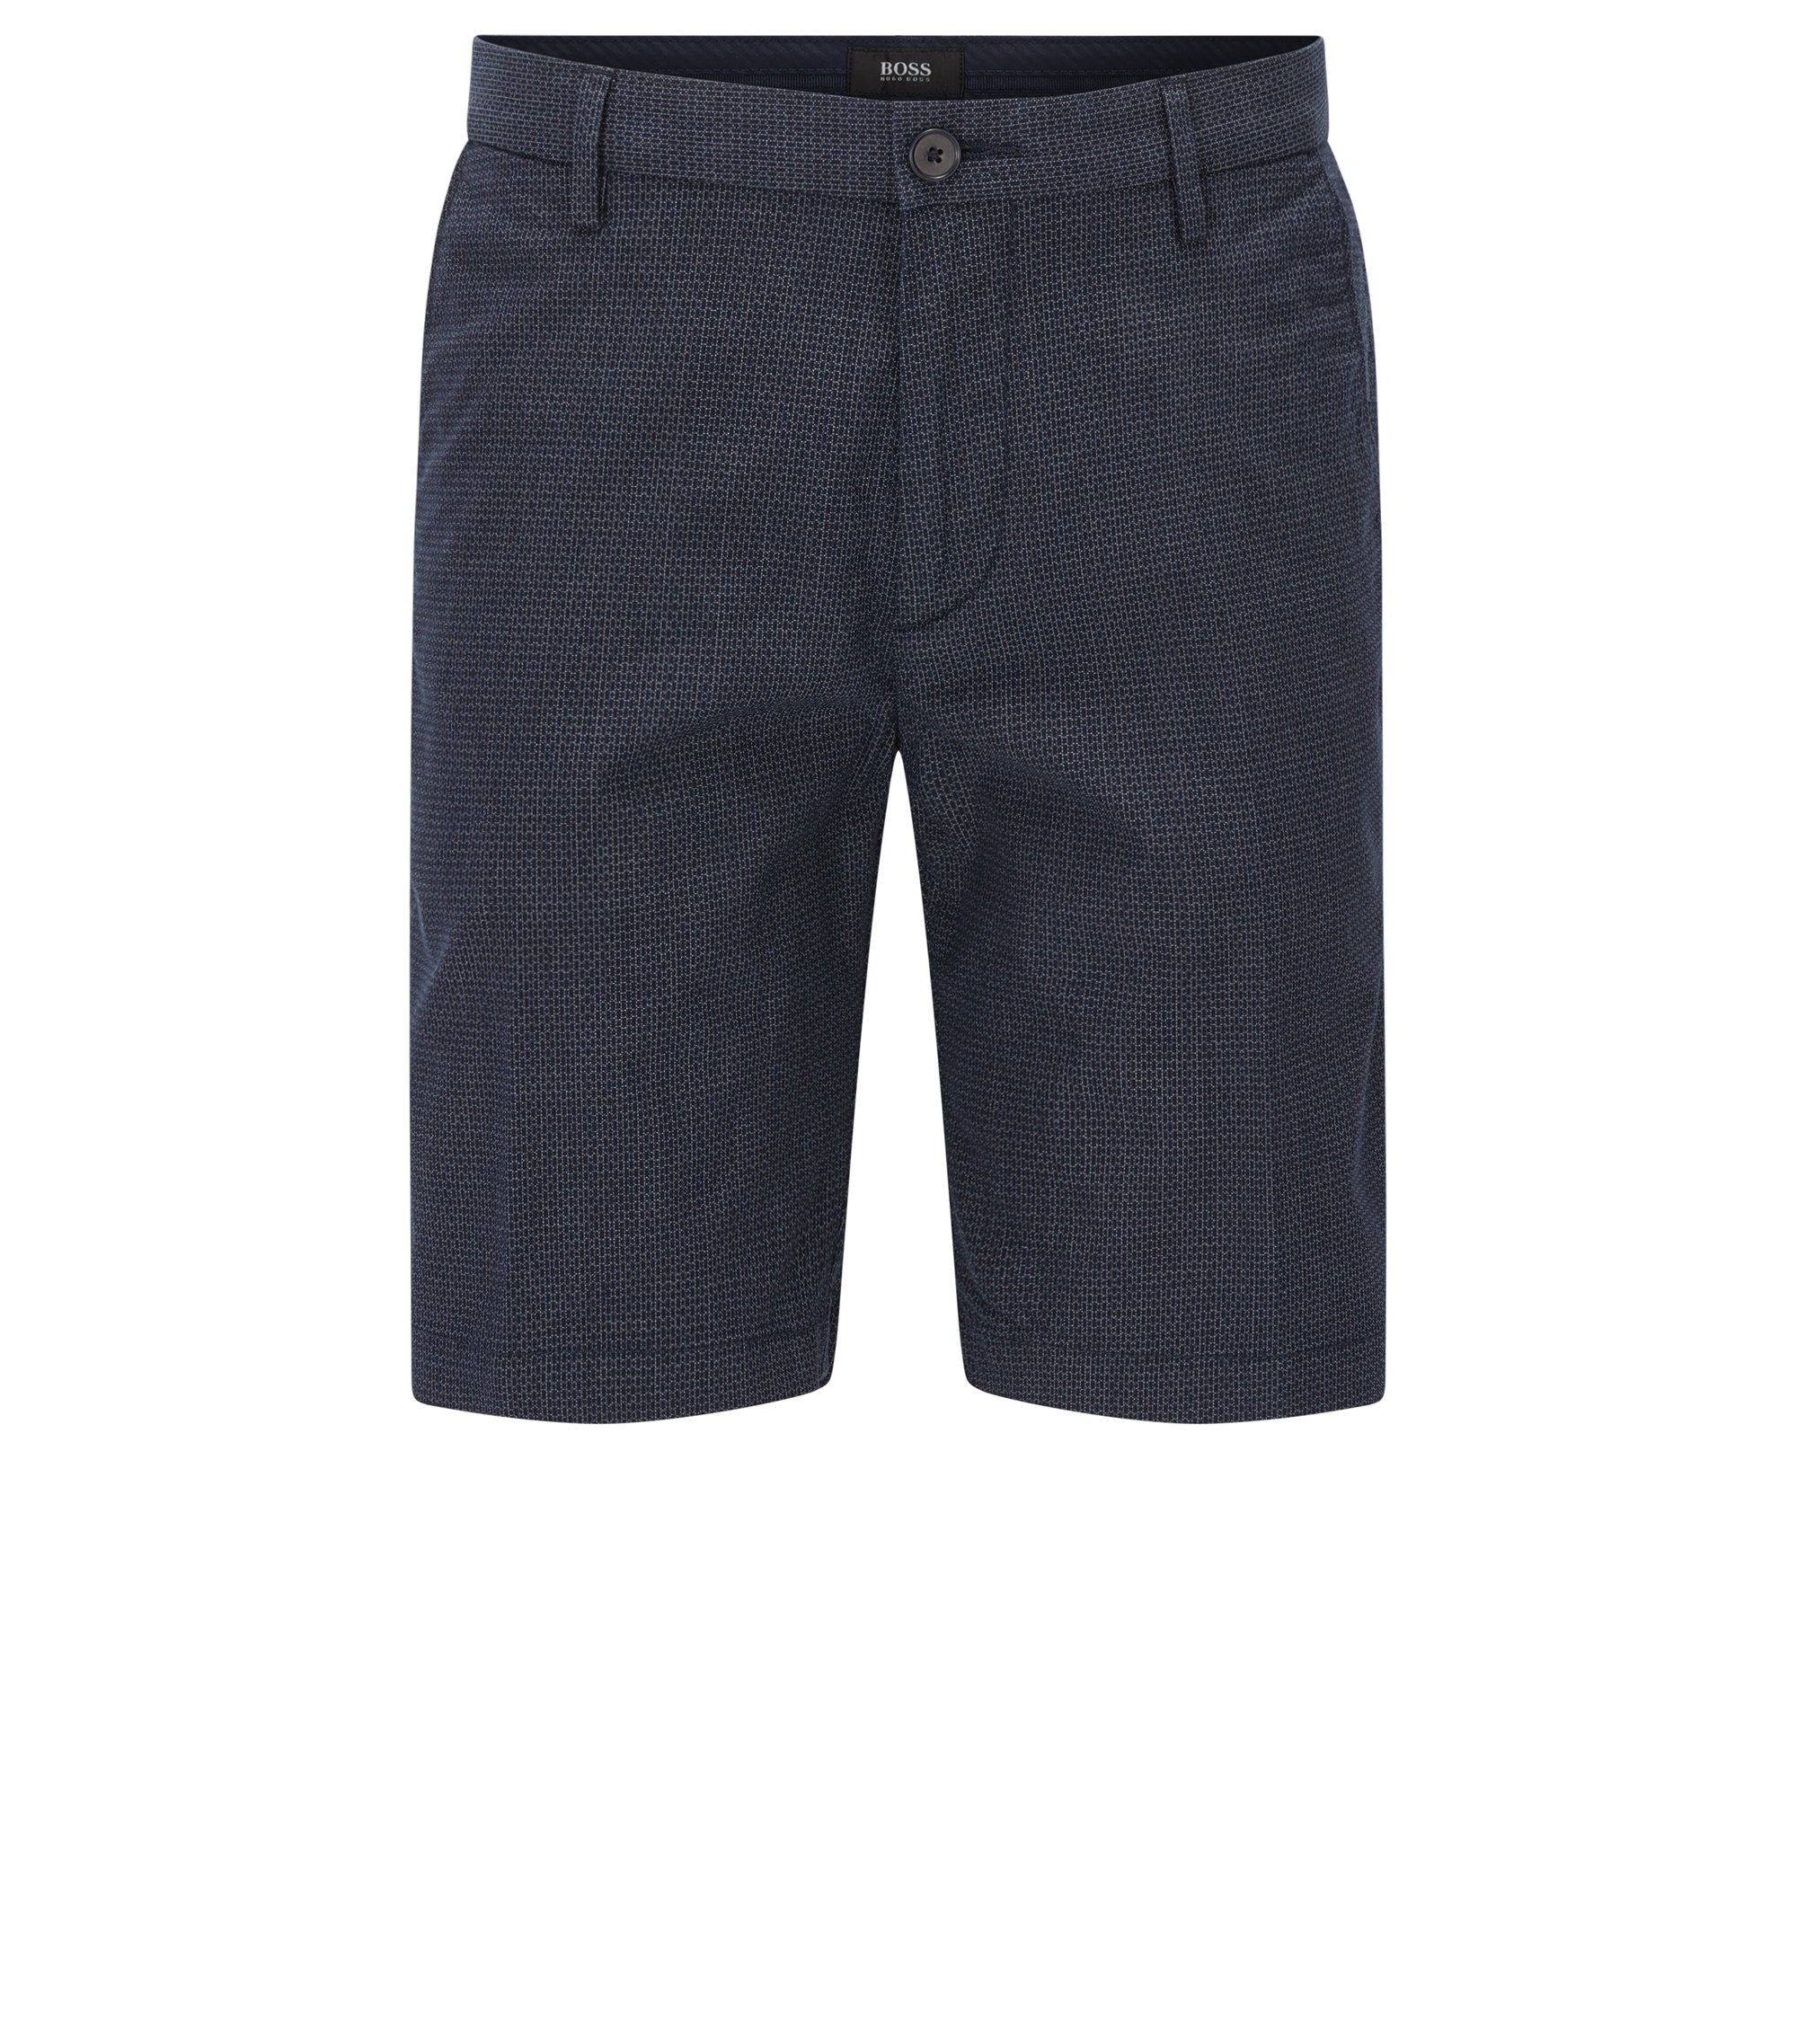 Italian Stretch Cotton Shorts, Slim Fit | Rice Short W, Dark Blue